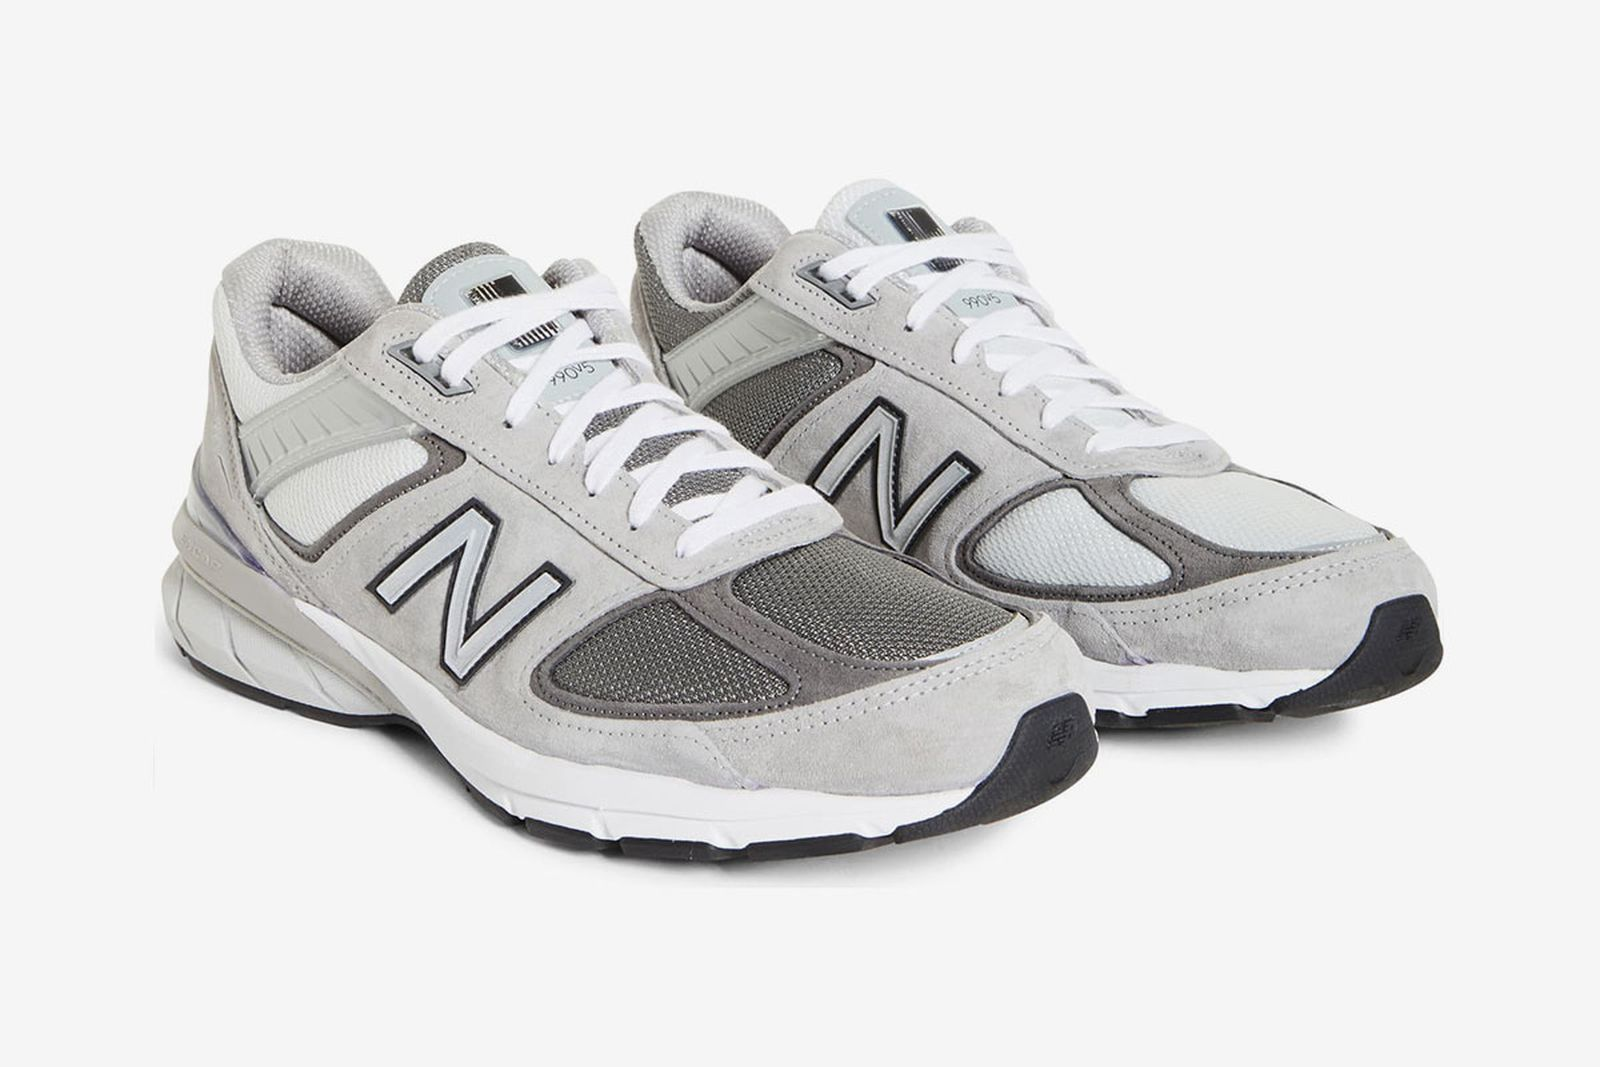 beams-new-balance-990v5-release-date-price-03